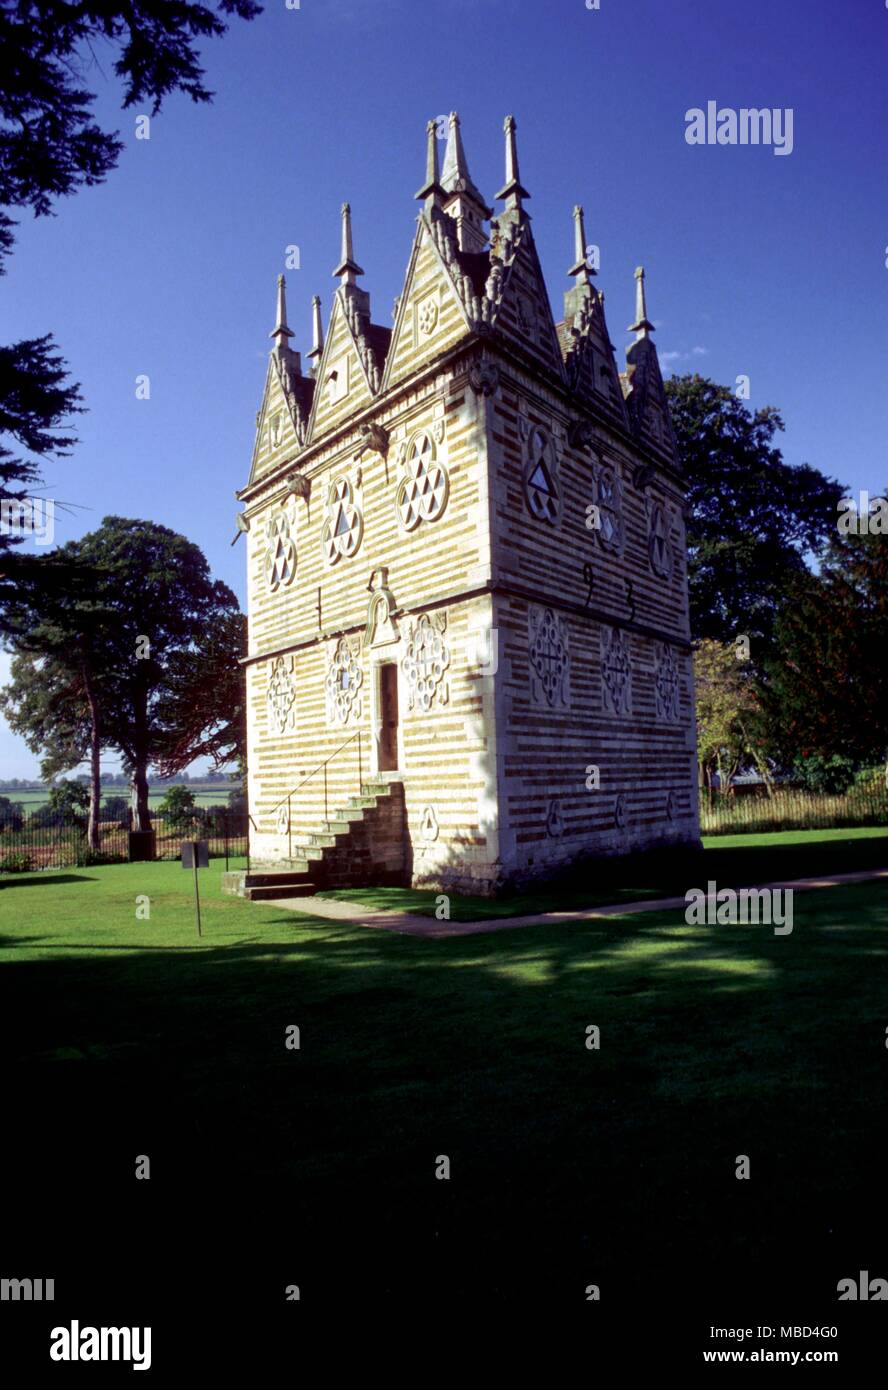 Strange places - Rushton Triangular Lodge.  Replete with many magical symbols.  Built by Sir Thomas Gresham in 1597.  The number three plays an important part in the symbolic programme  - © /Charles Walker - Stock Image